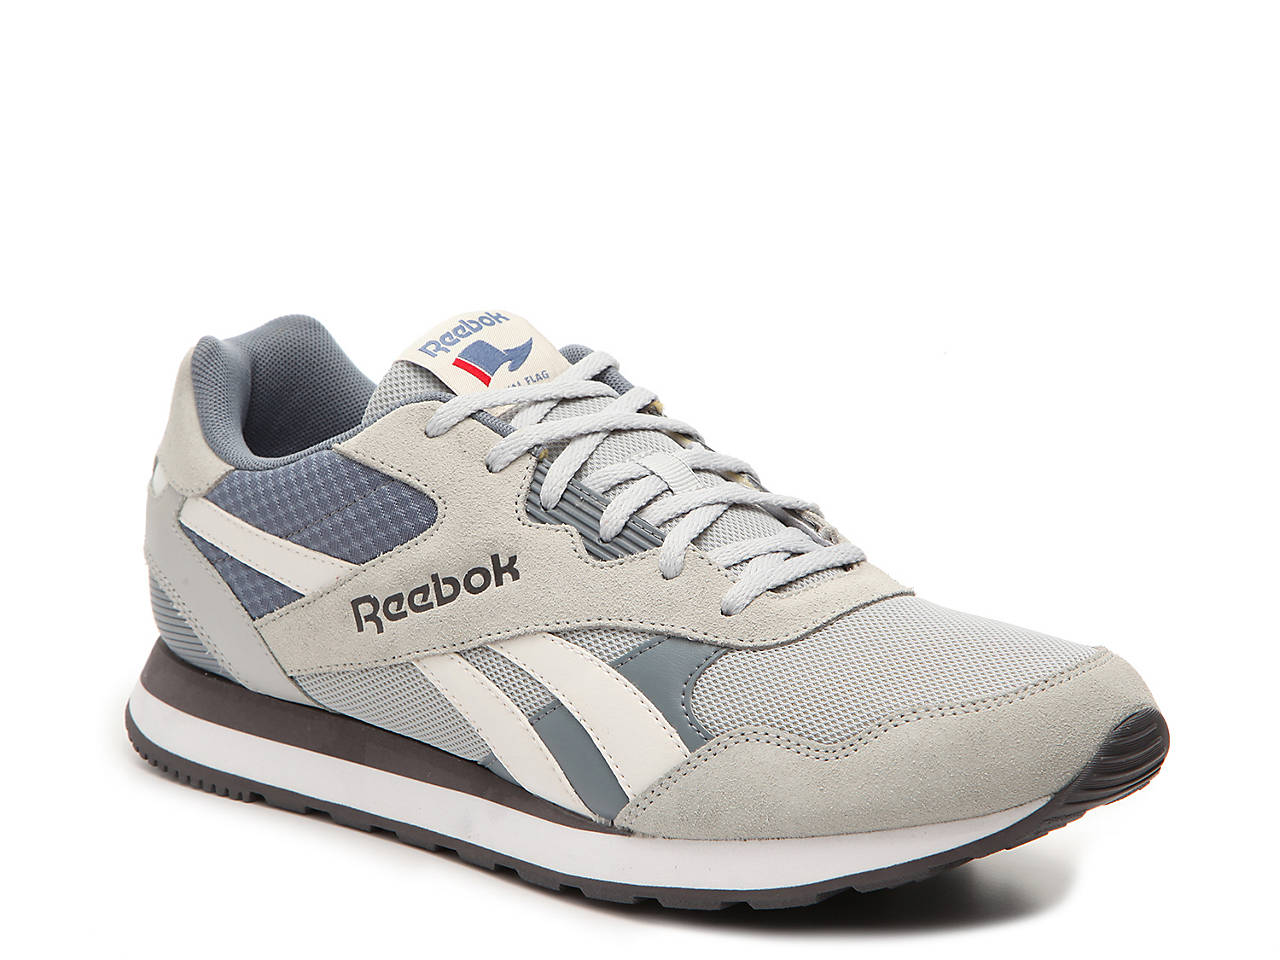 492b9b45d6fc Reebok Royal Tempo Sneaker - Men s Men s Shoes